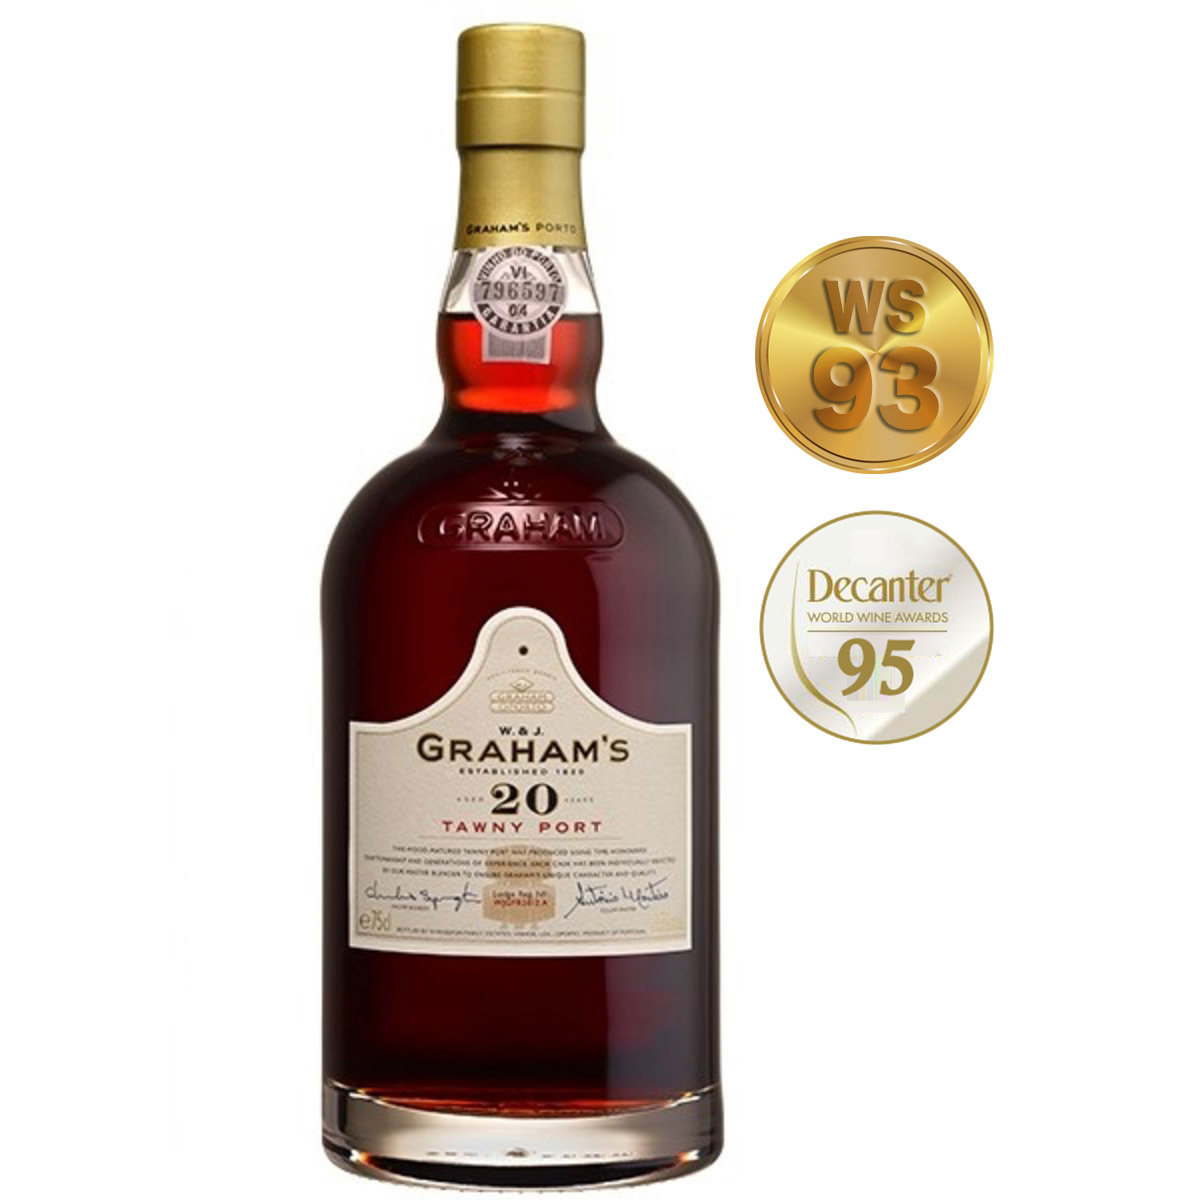 Grahams 20 years Tawny Port (禮盒裝) (WS 93, Decanter 95)